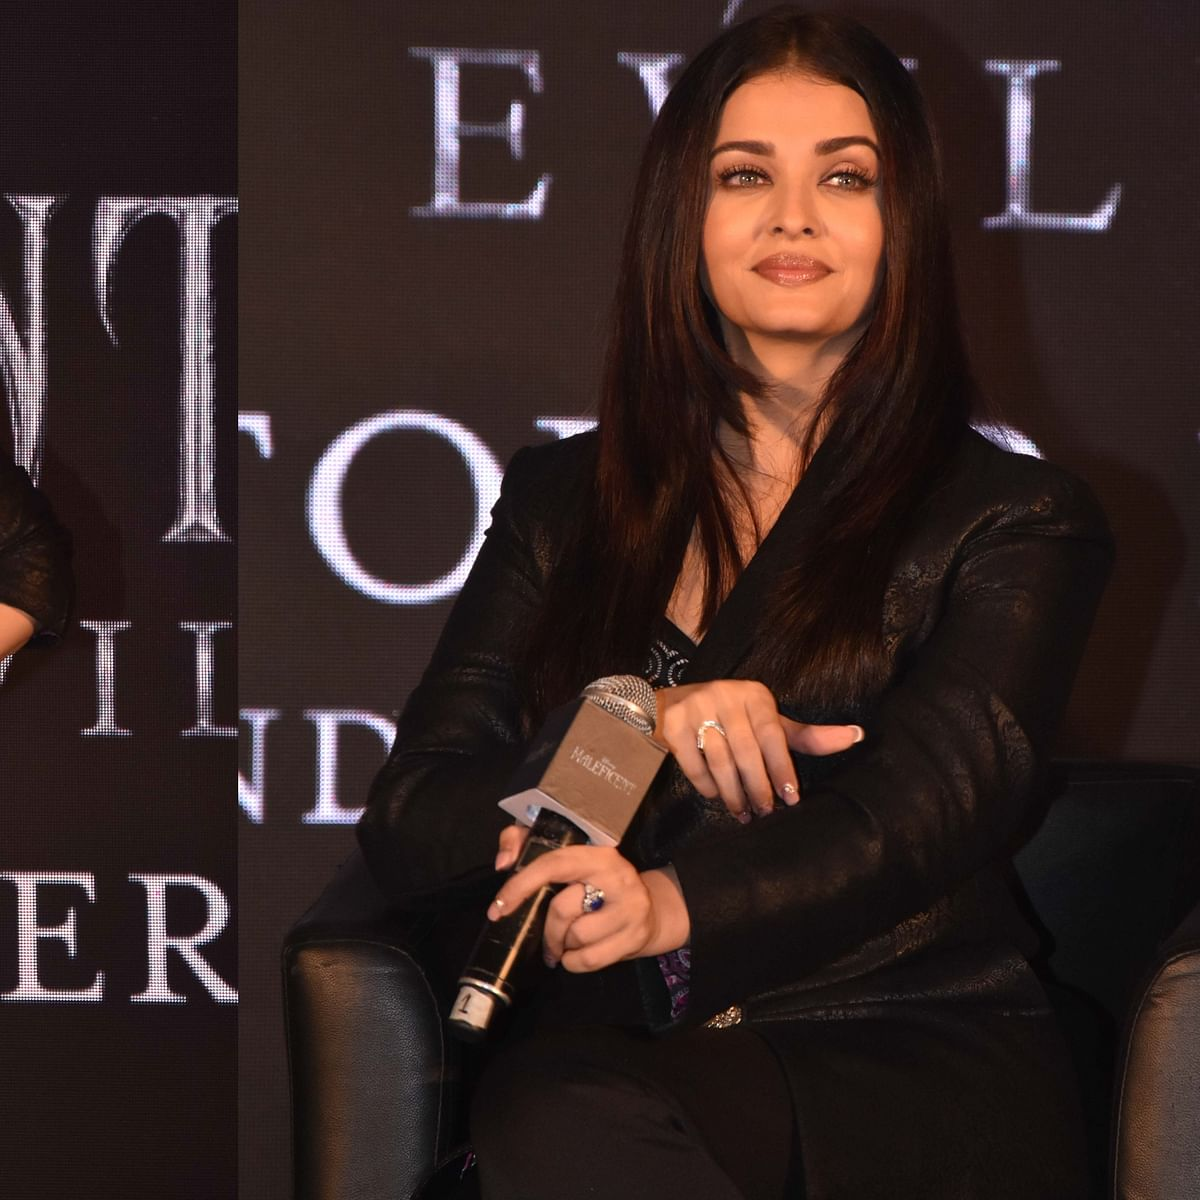 Aishwarya Rai Bachchan's 'Maleficent' style has a French connection